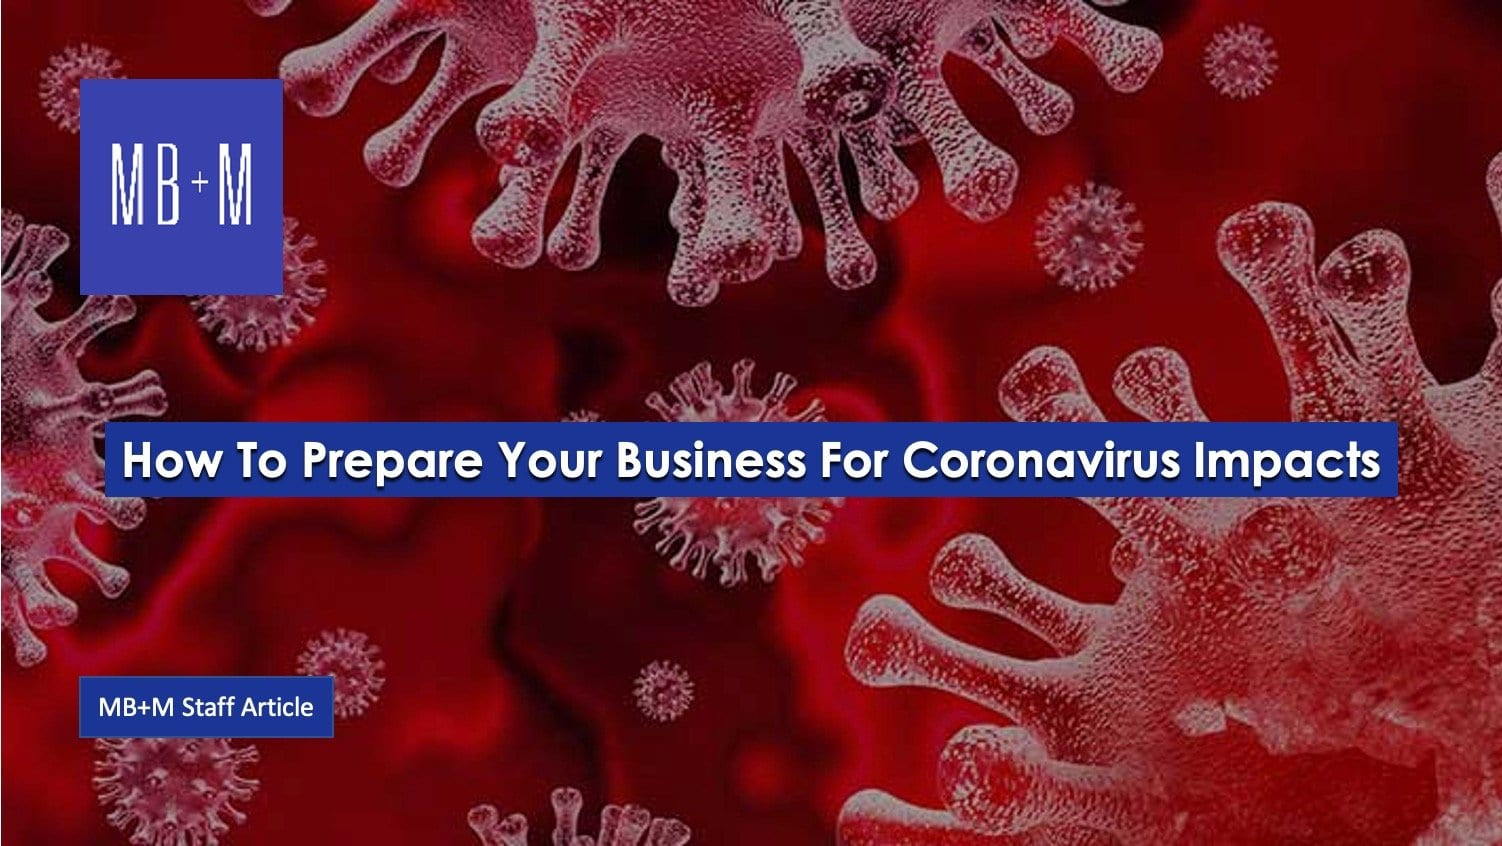 How to prepare your business for Coronavirus impacts